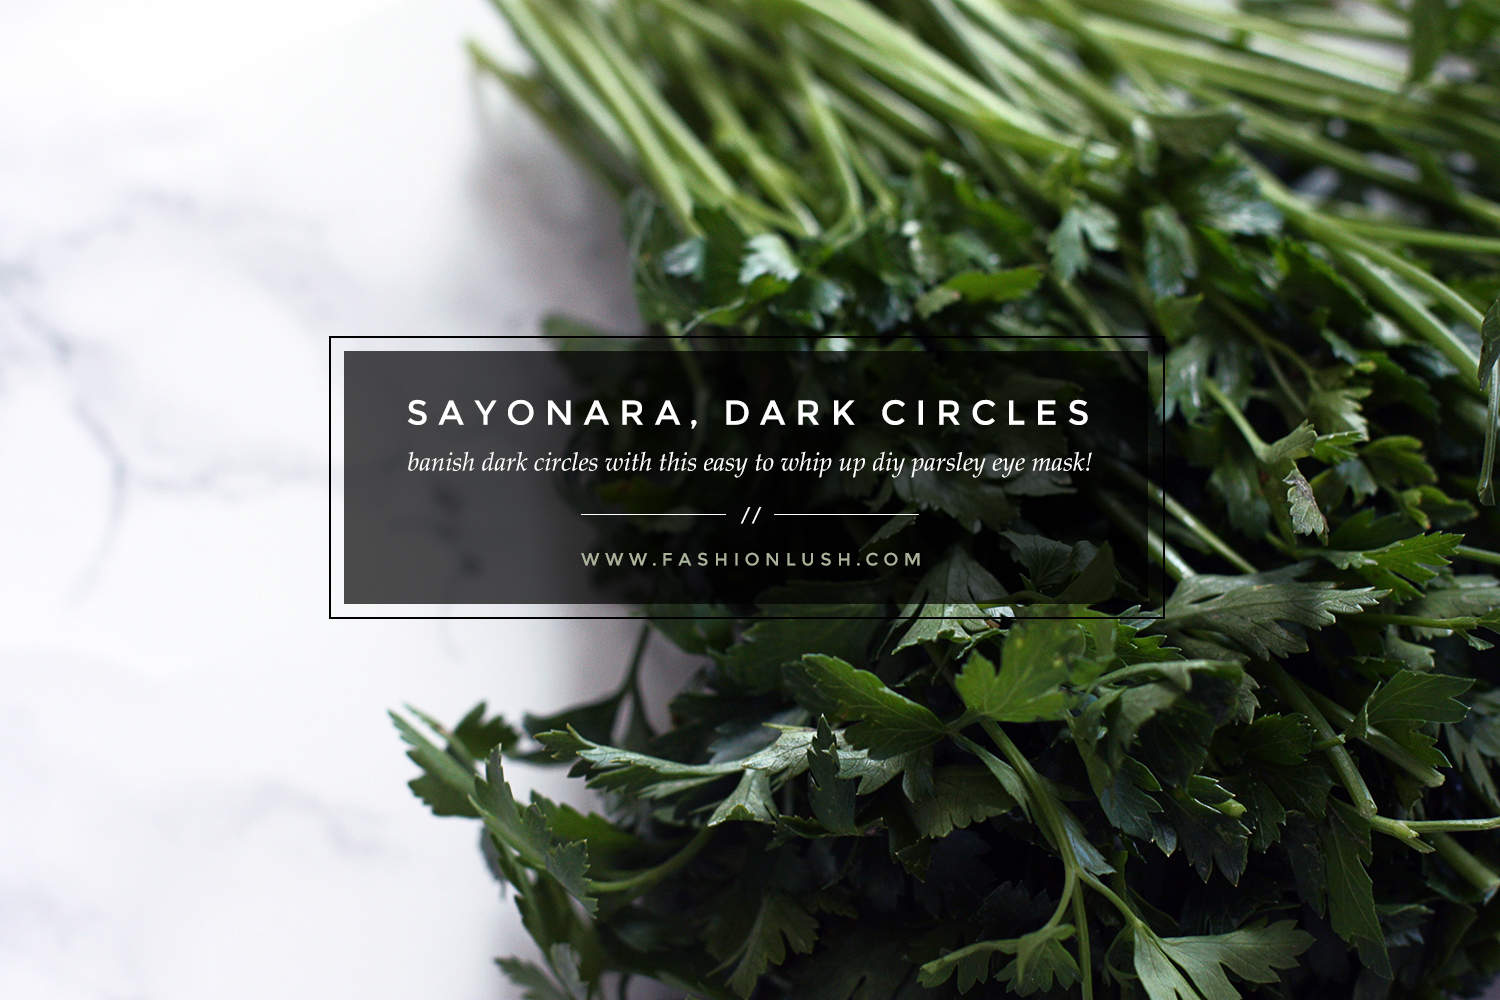 fashionlush, diy dark circle mask, natural skincare diy